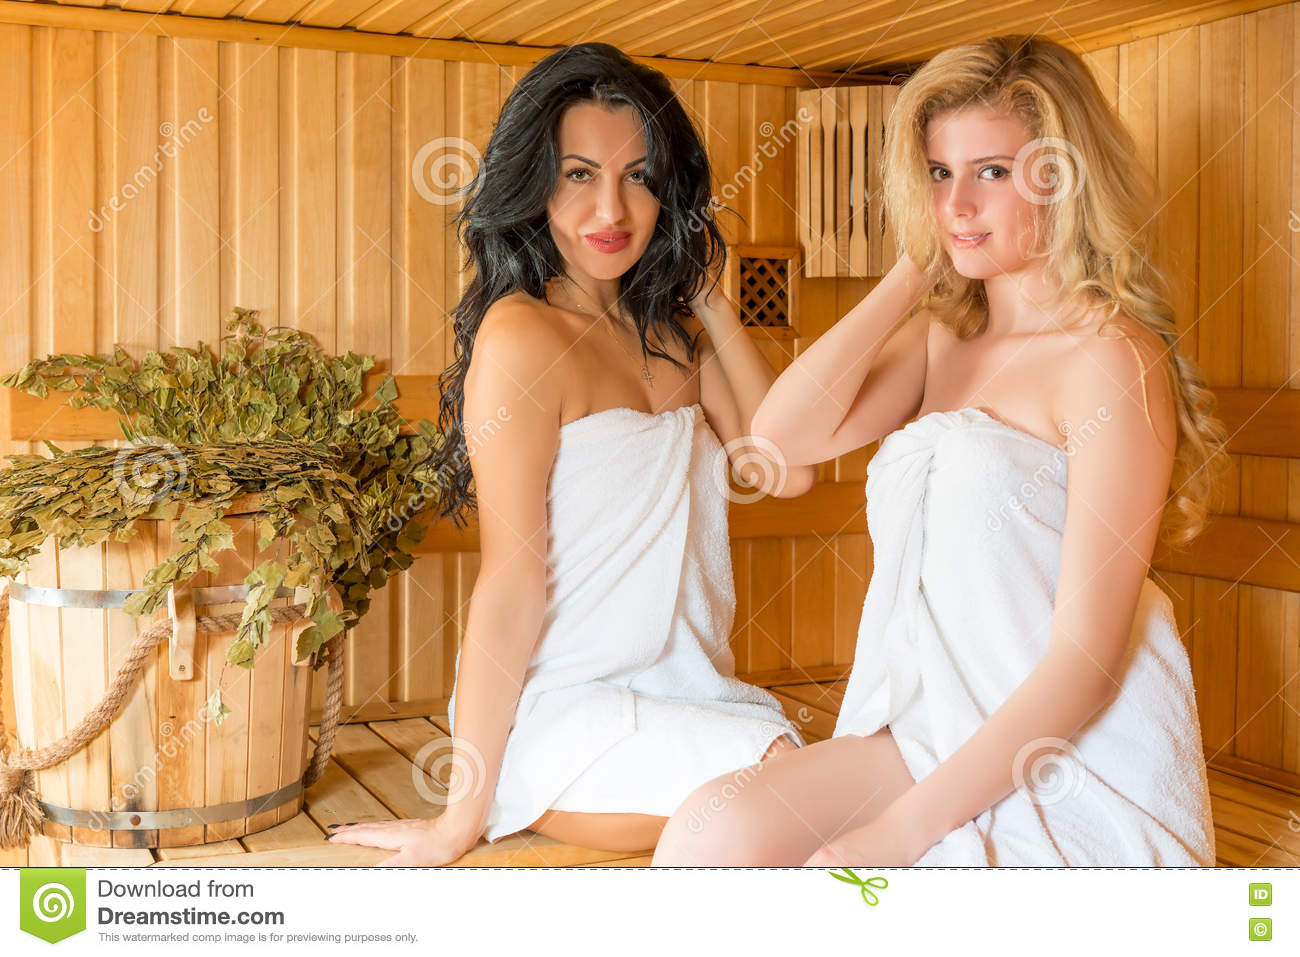 Lesbians in the sauna message